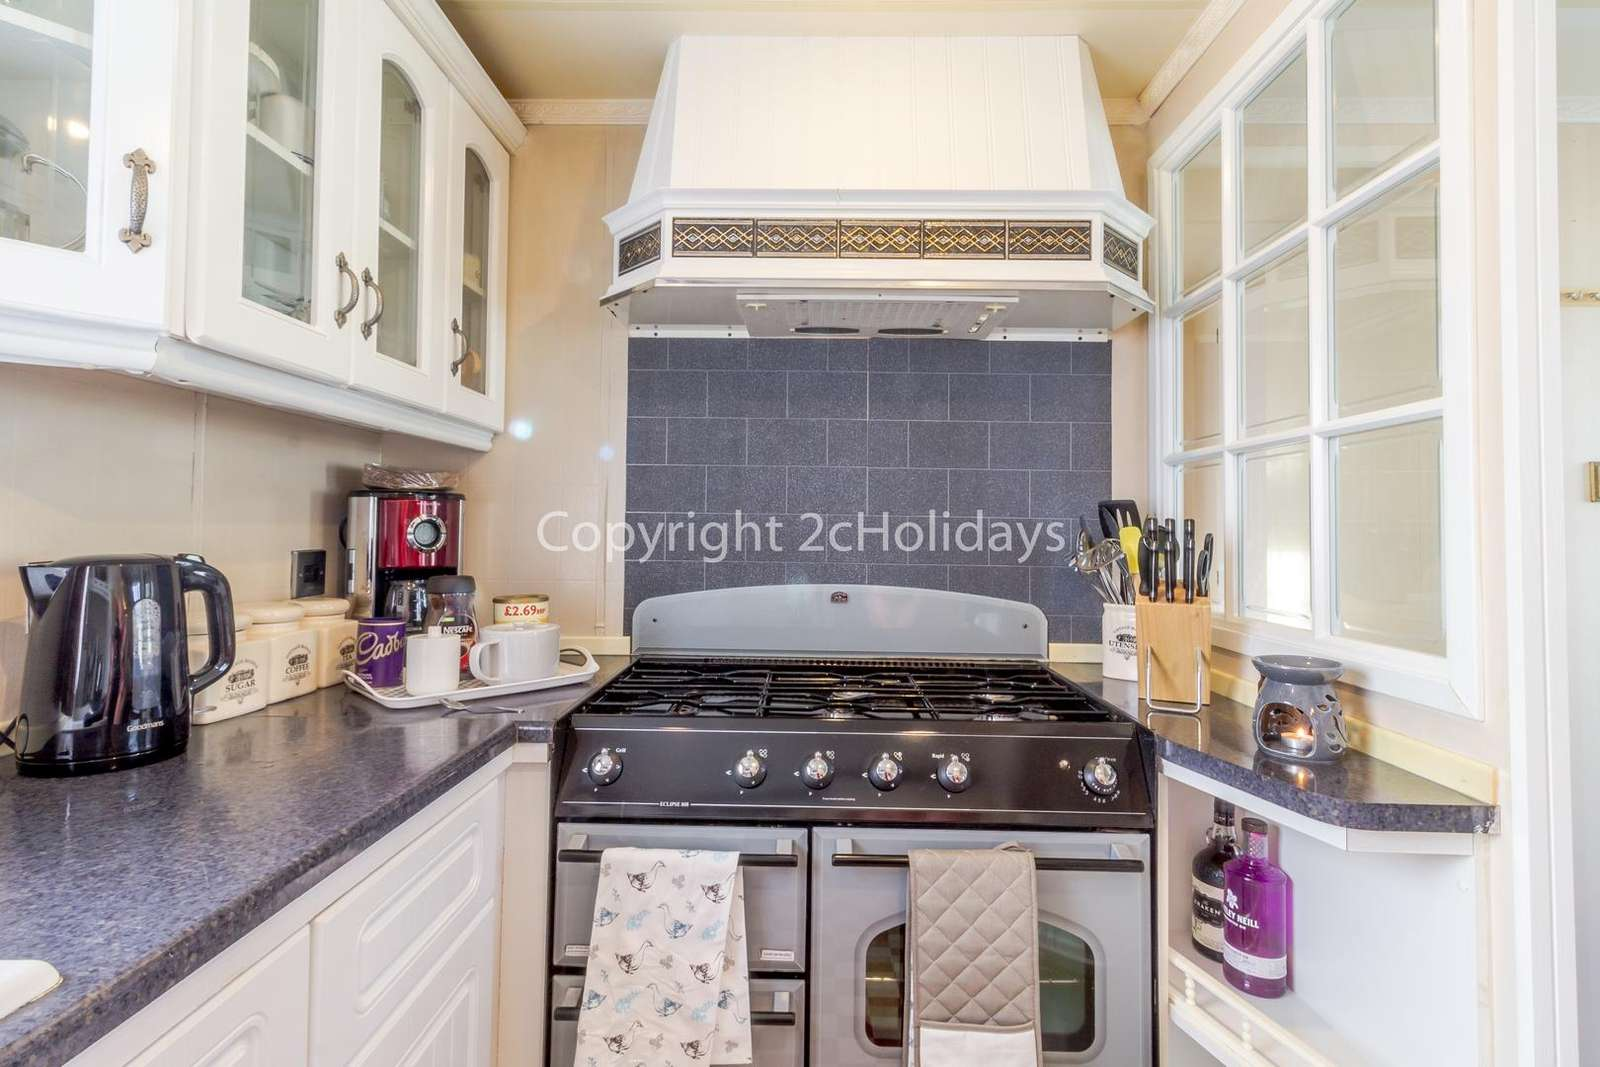 This modern kitchen has fully equipped, perfect for self-catering holidays